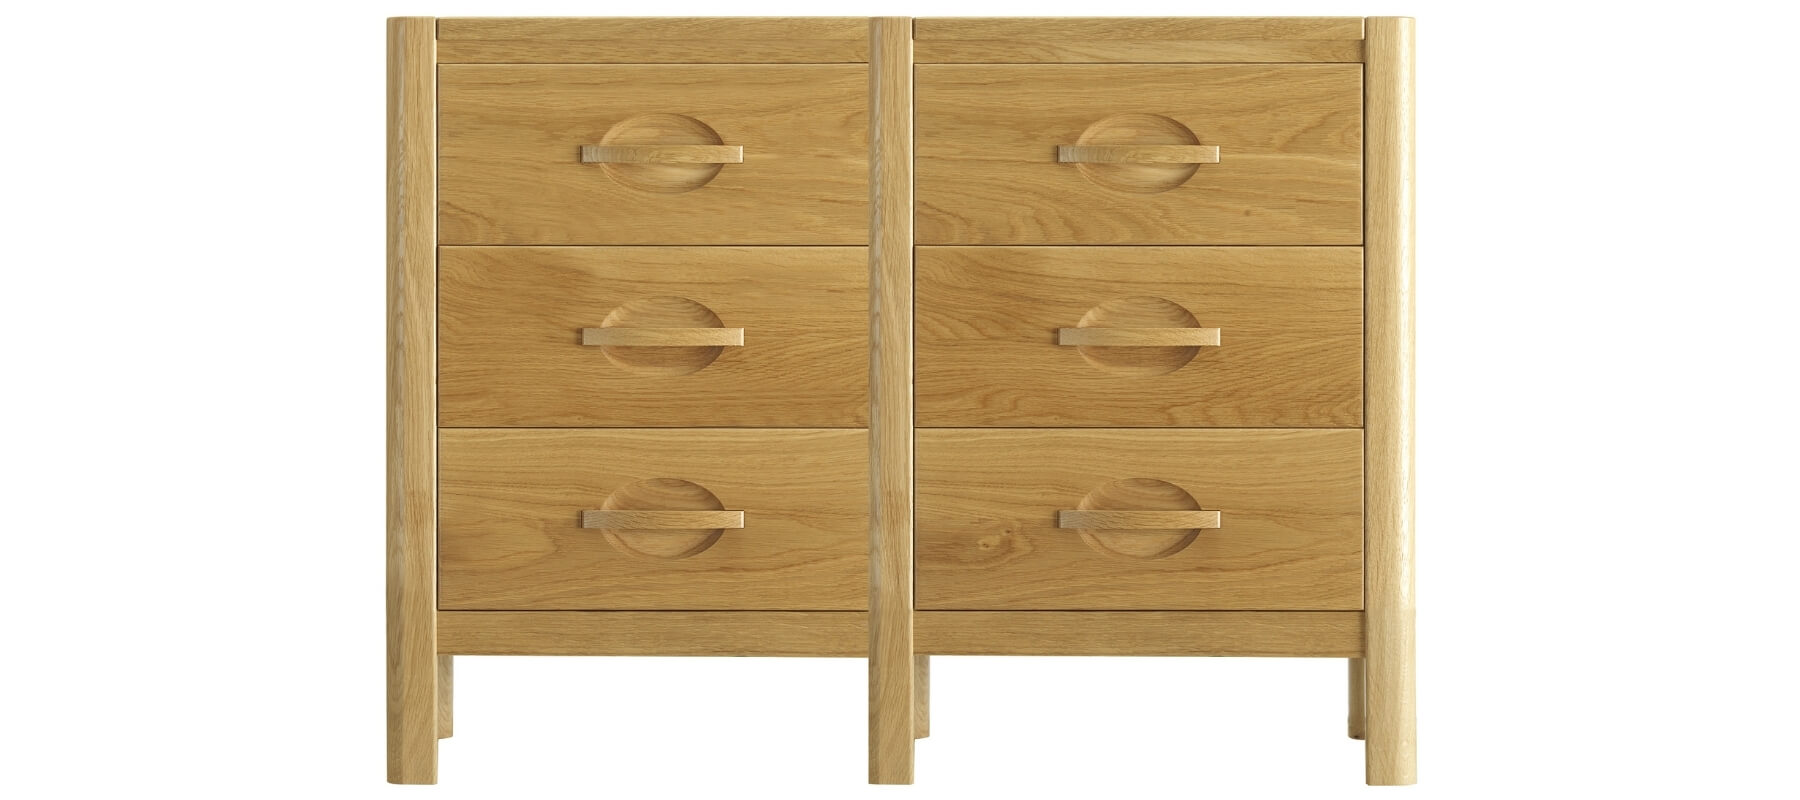 A six-drawer nightstand